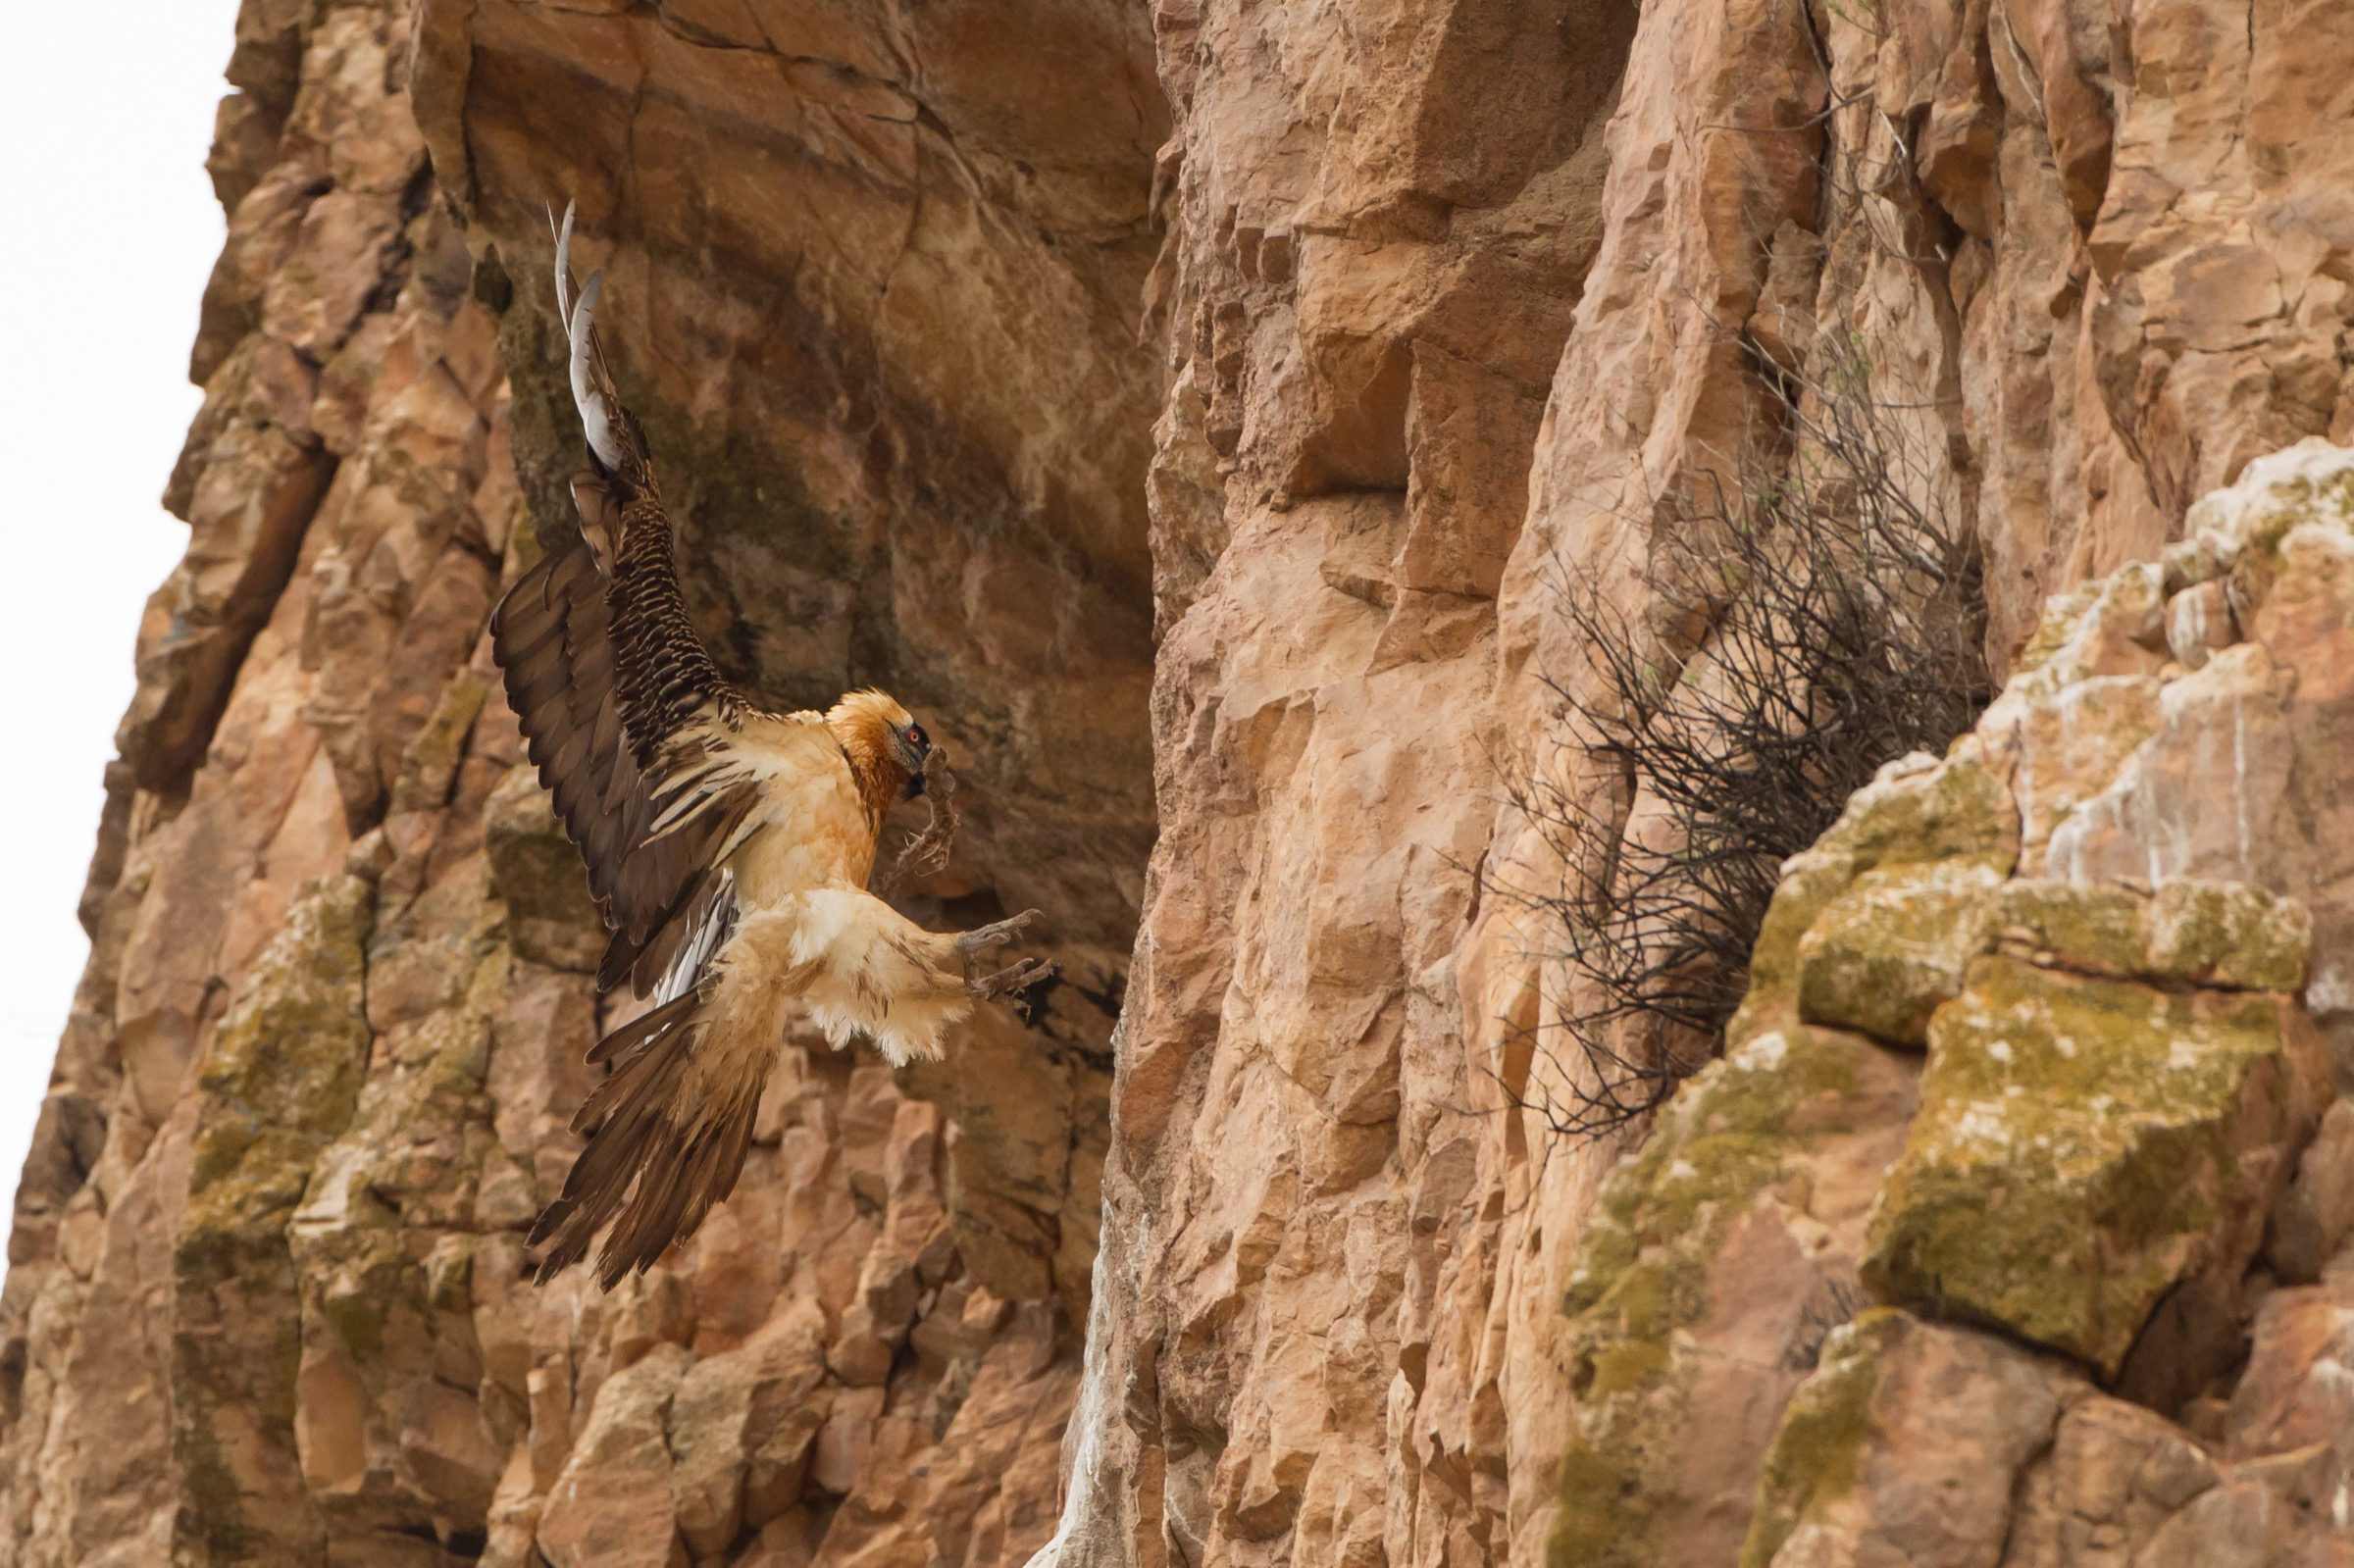 According to Iranian folklore, bearded vultures (Gypaetus barbatus), like this one in Iran's Golestan National Park, bring good luck to anyone fortunate enough to see one. A day after photographing this individual, Behzad Farahanchi encountered a Persian leopard, his holy grail of wildlife photography. Photograph by Behzad Farahanchi